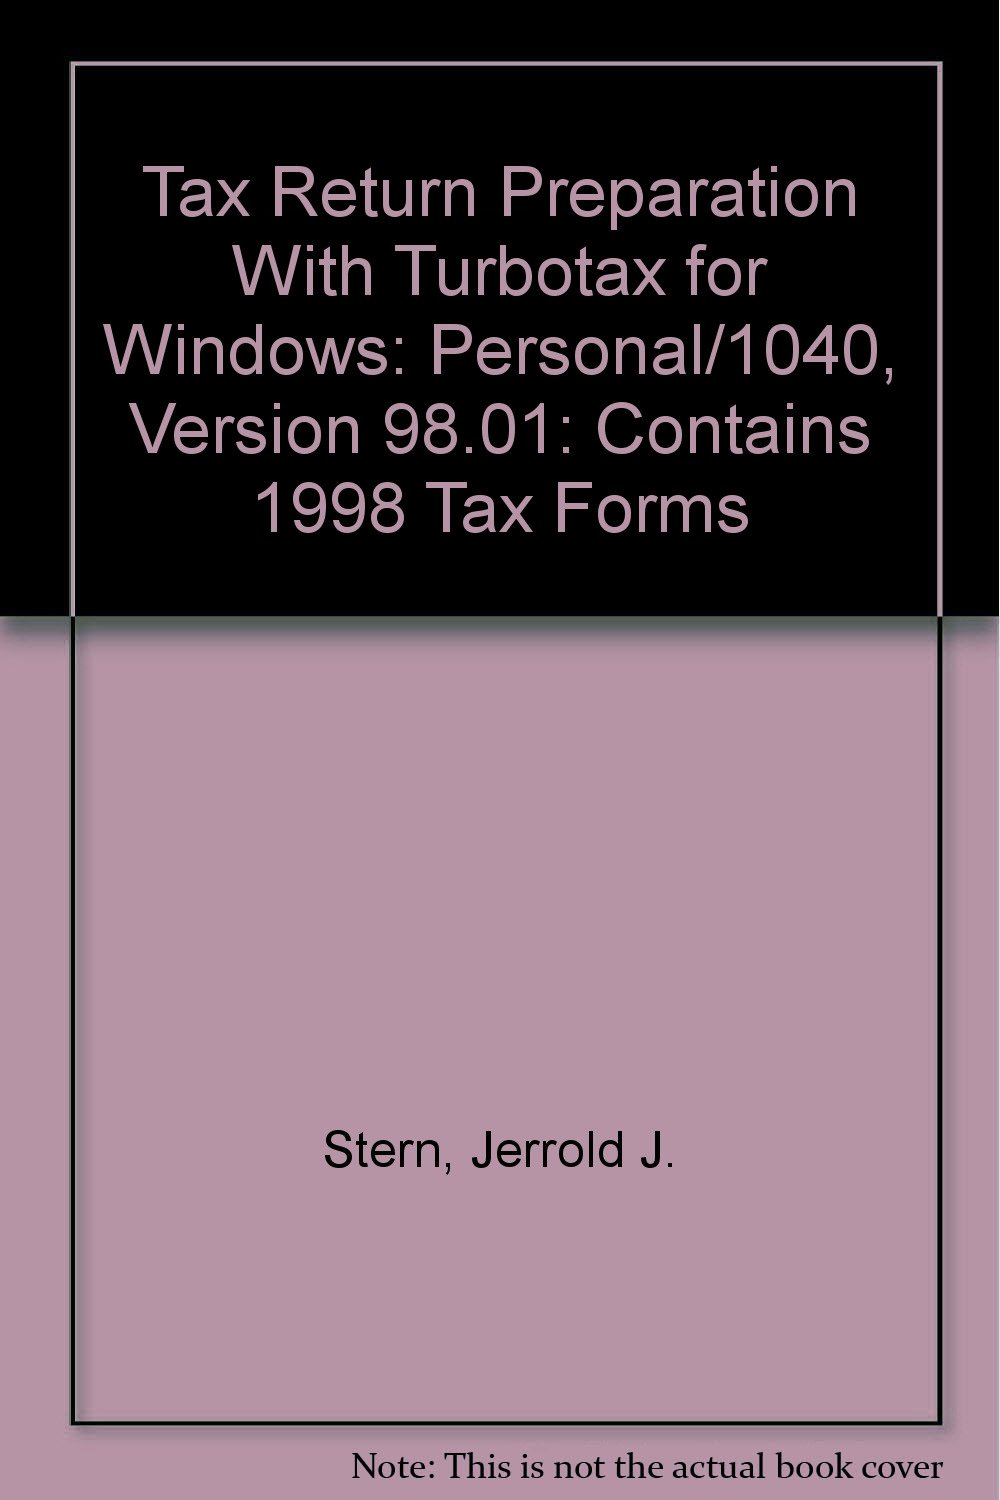 Tax Return Preparation With Turbotax for Windows: Personal/1040, Version 98.01: Contains 1998 Tax Forms: Amazon.es: Jerrold J. Stern, Intuit: Libros en ...